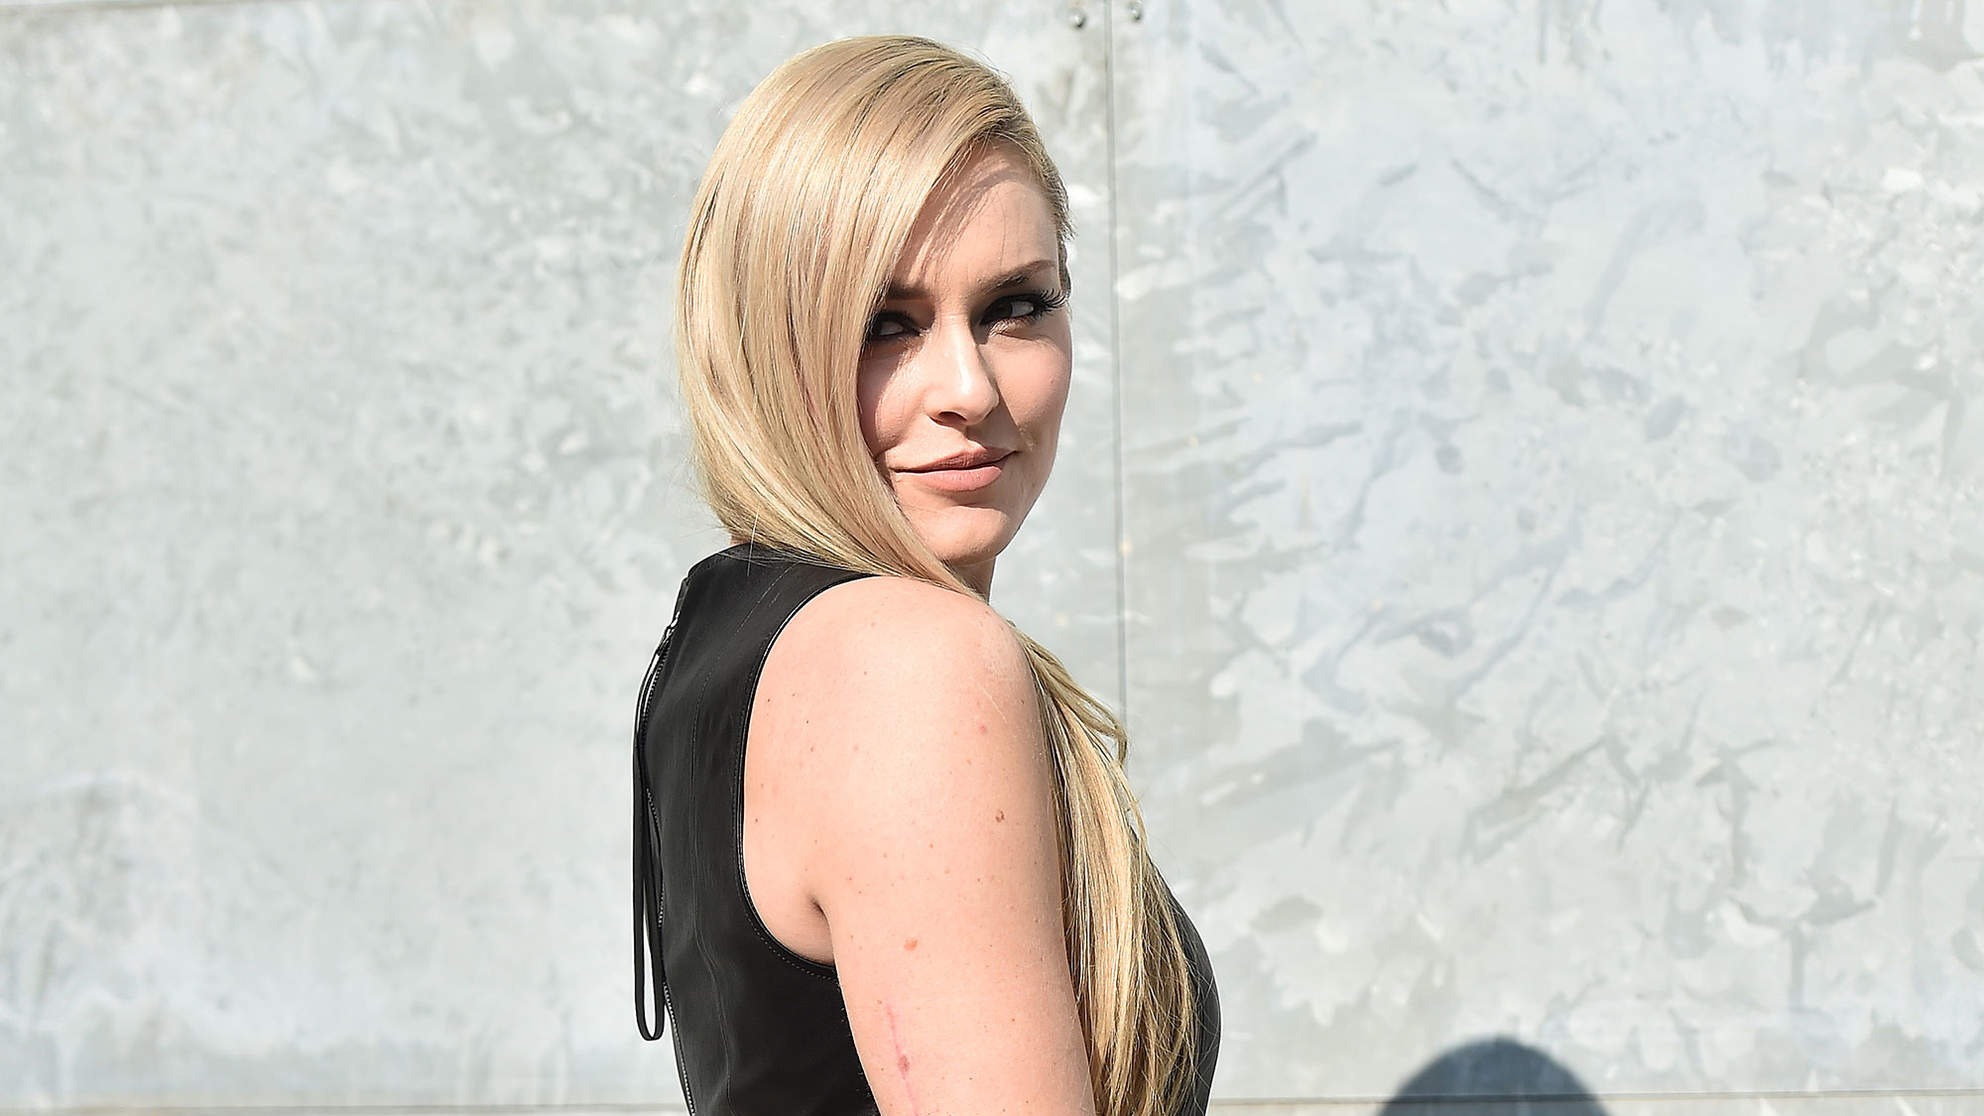 Lindsey Vonn Embraces Her Scars: 'My Scars Remind Me That I Am Strong and Beautiful'